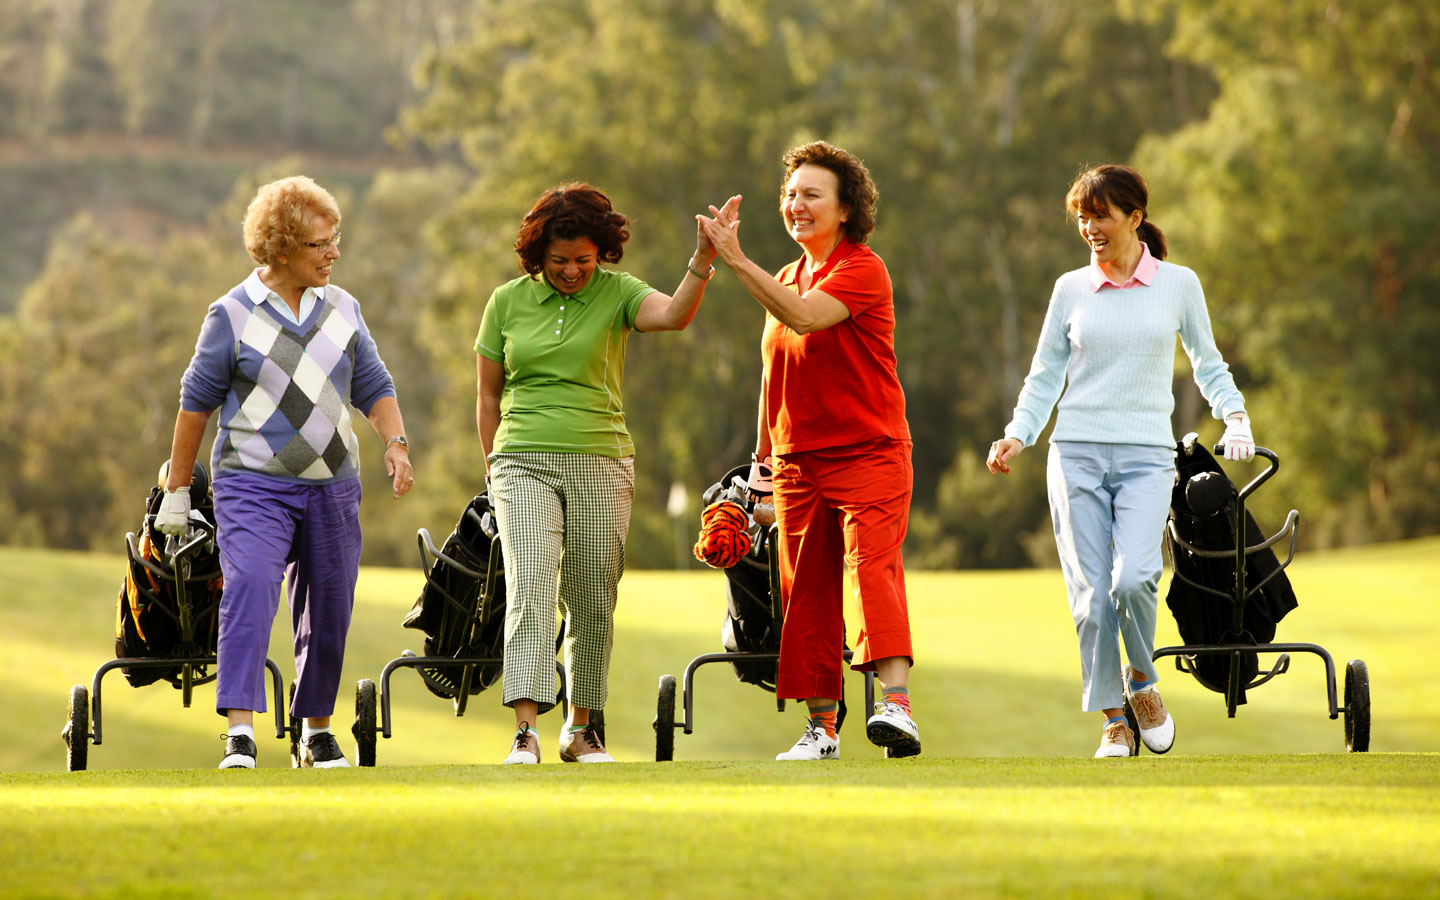 Four women walking on a golf course